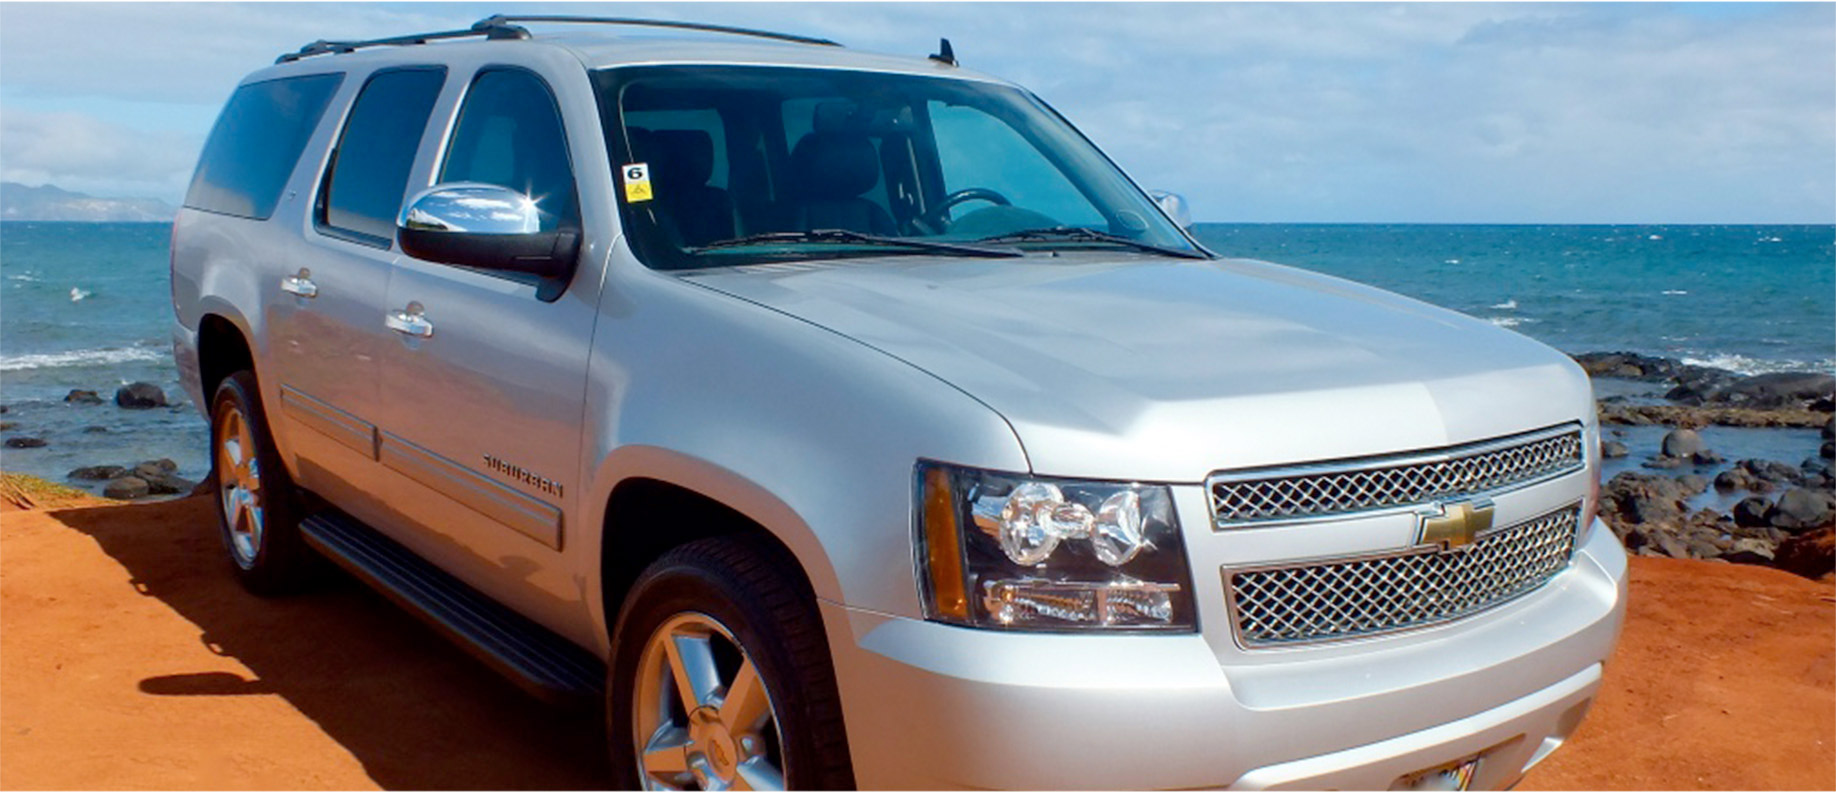 Hire a Luxury SUV and Driver on Maui